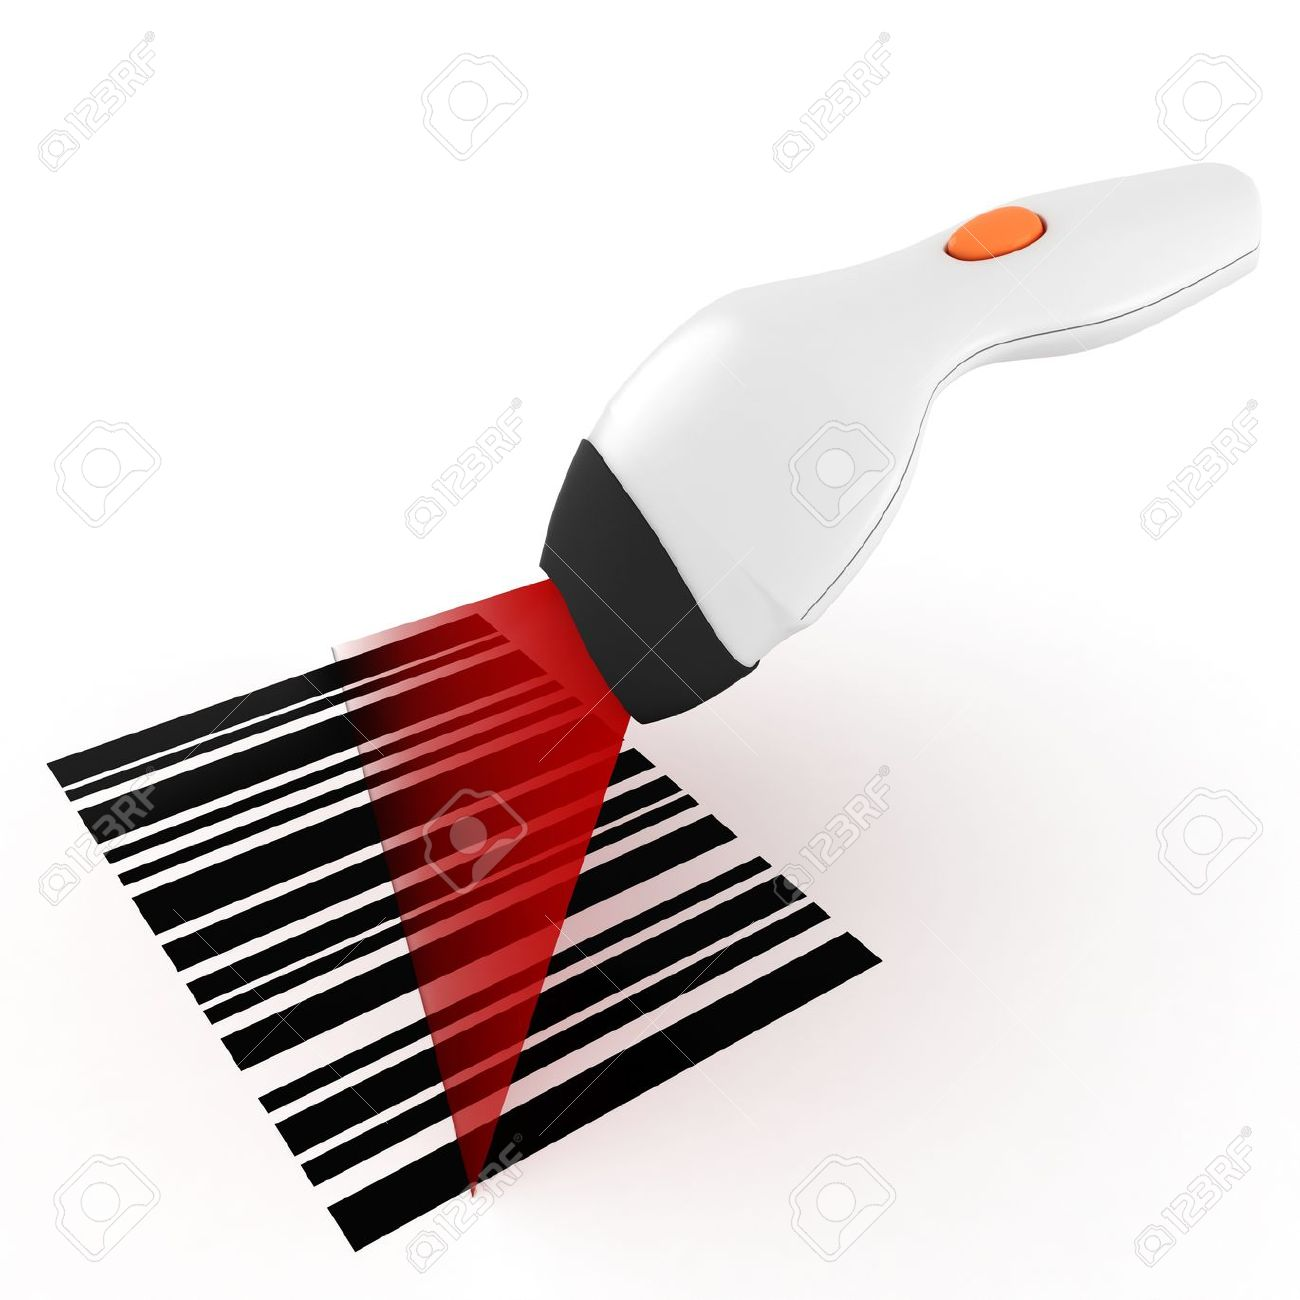 Barcode scanner clipart free.